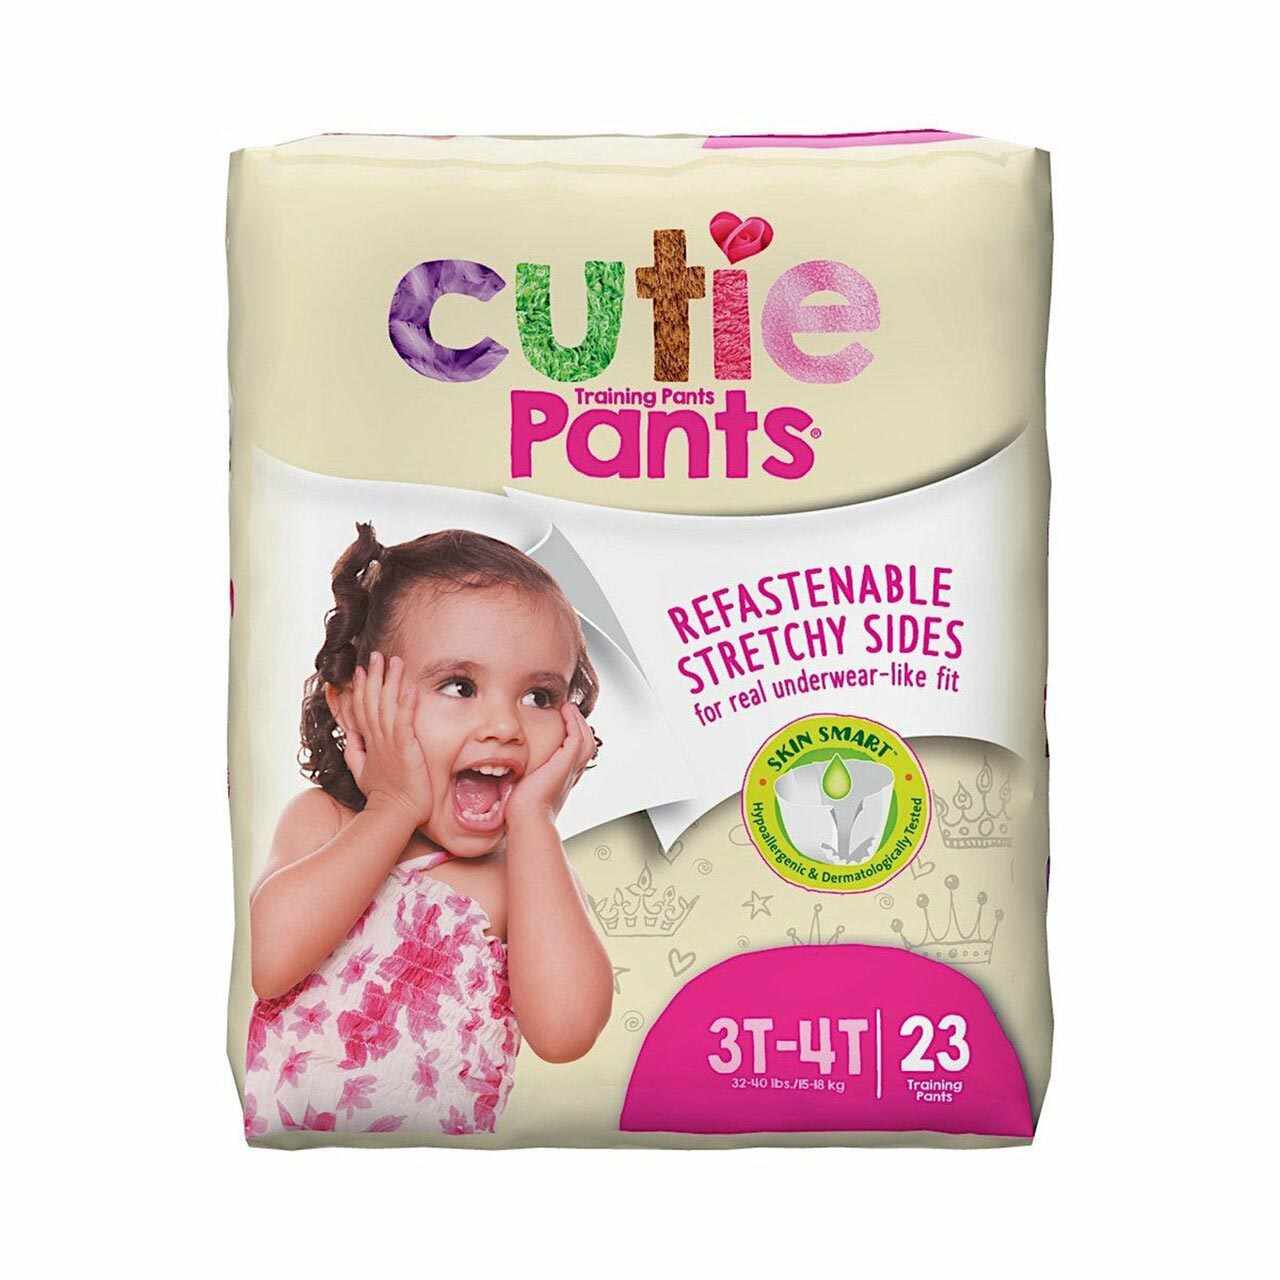 Cutie Pants Pull On Heavy Absorbency Toddler Training Pants, 3T-4T, Disposable